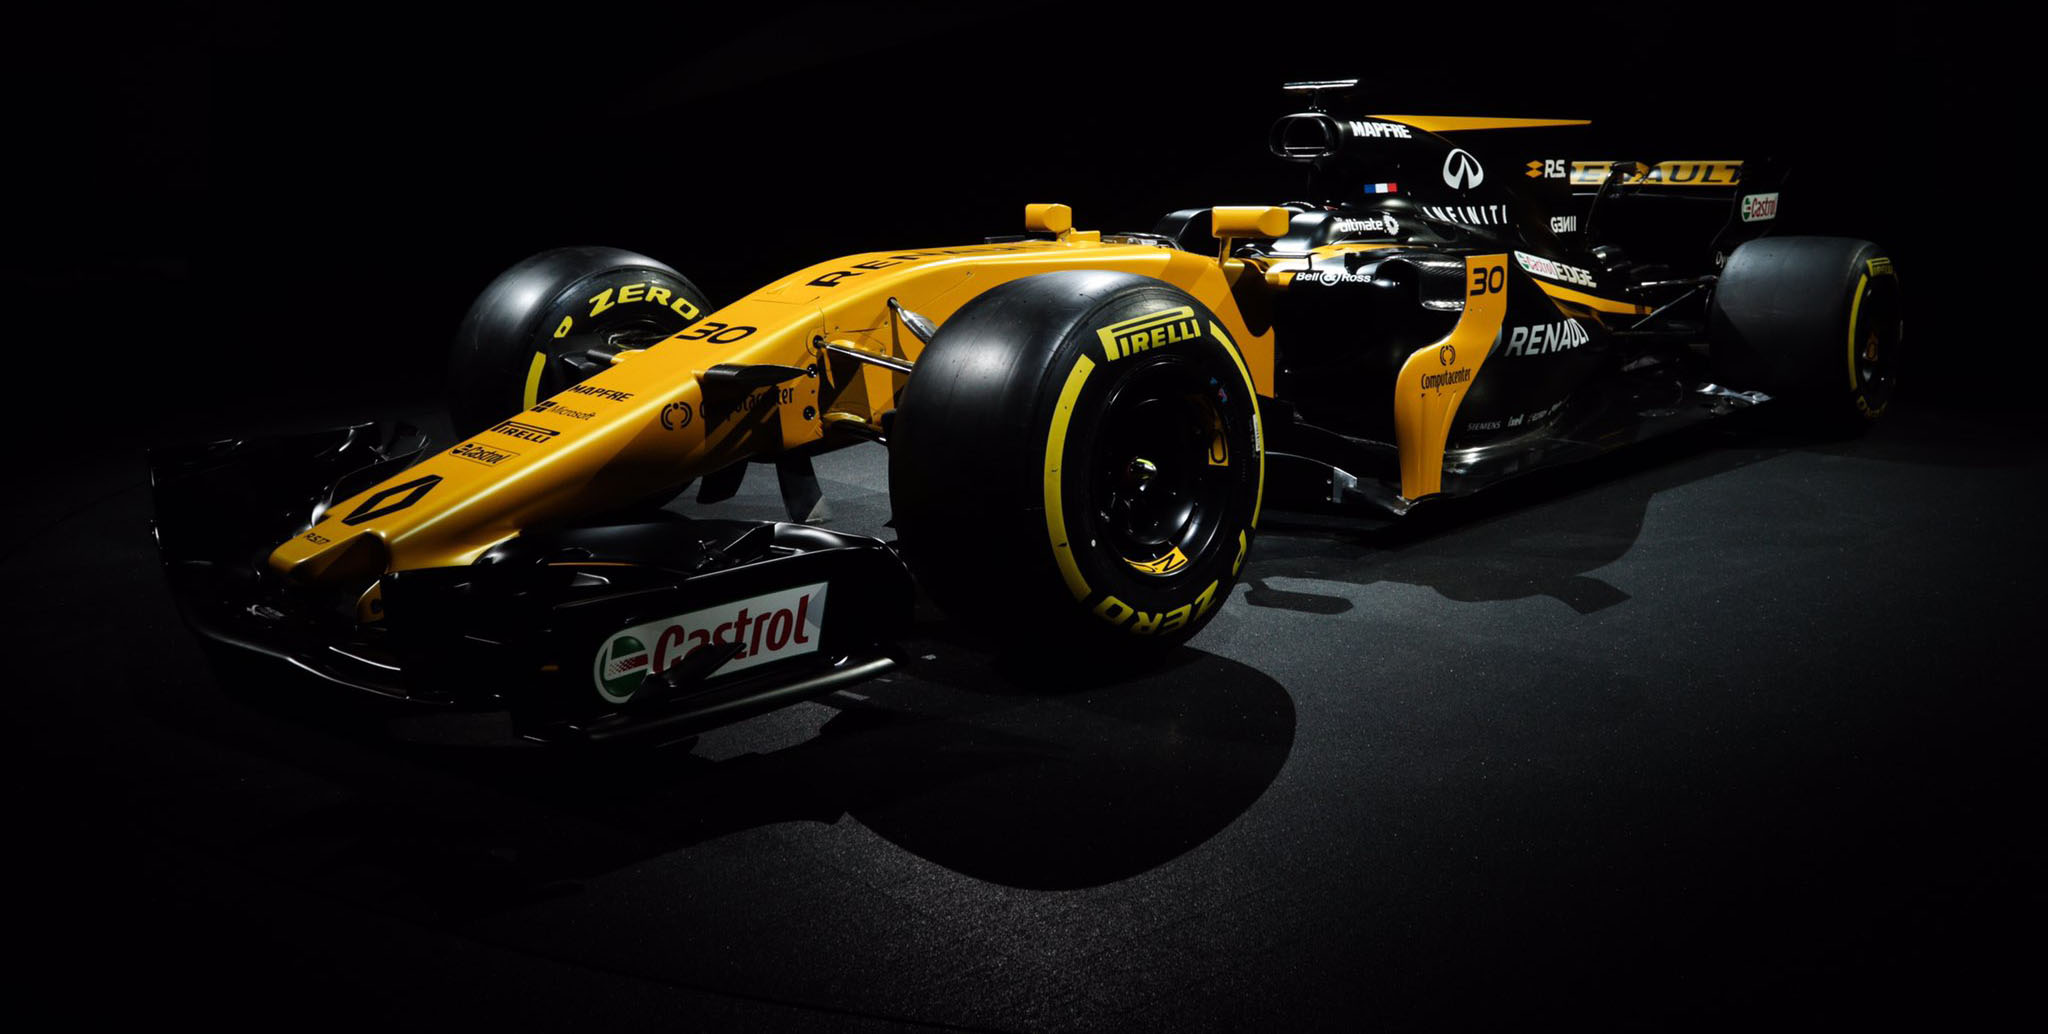 The cars of F1 2017